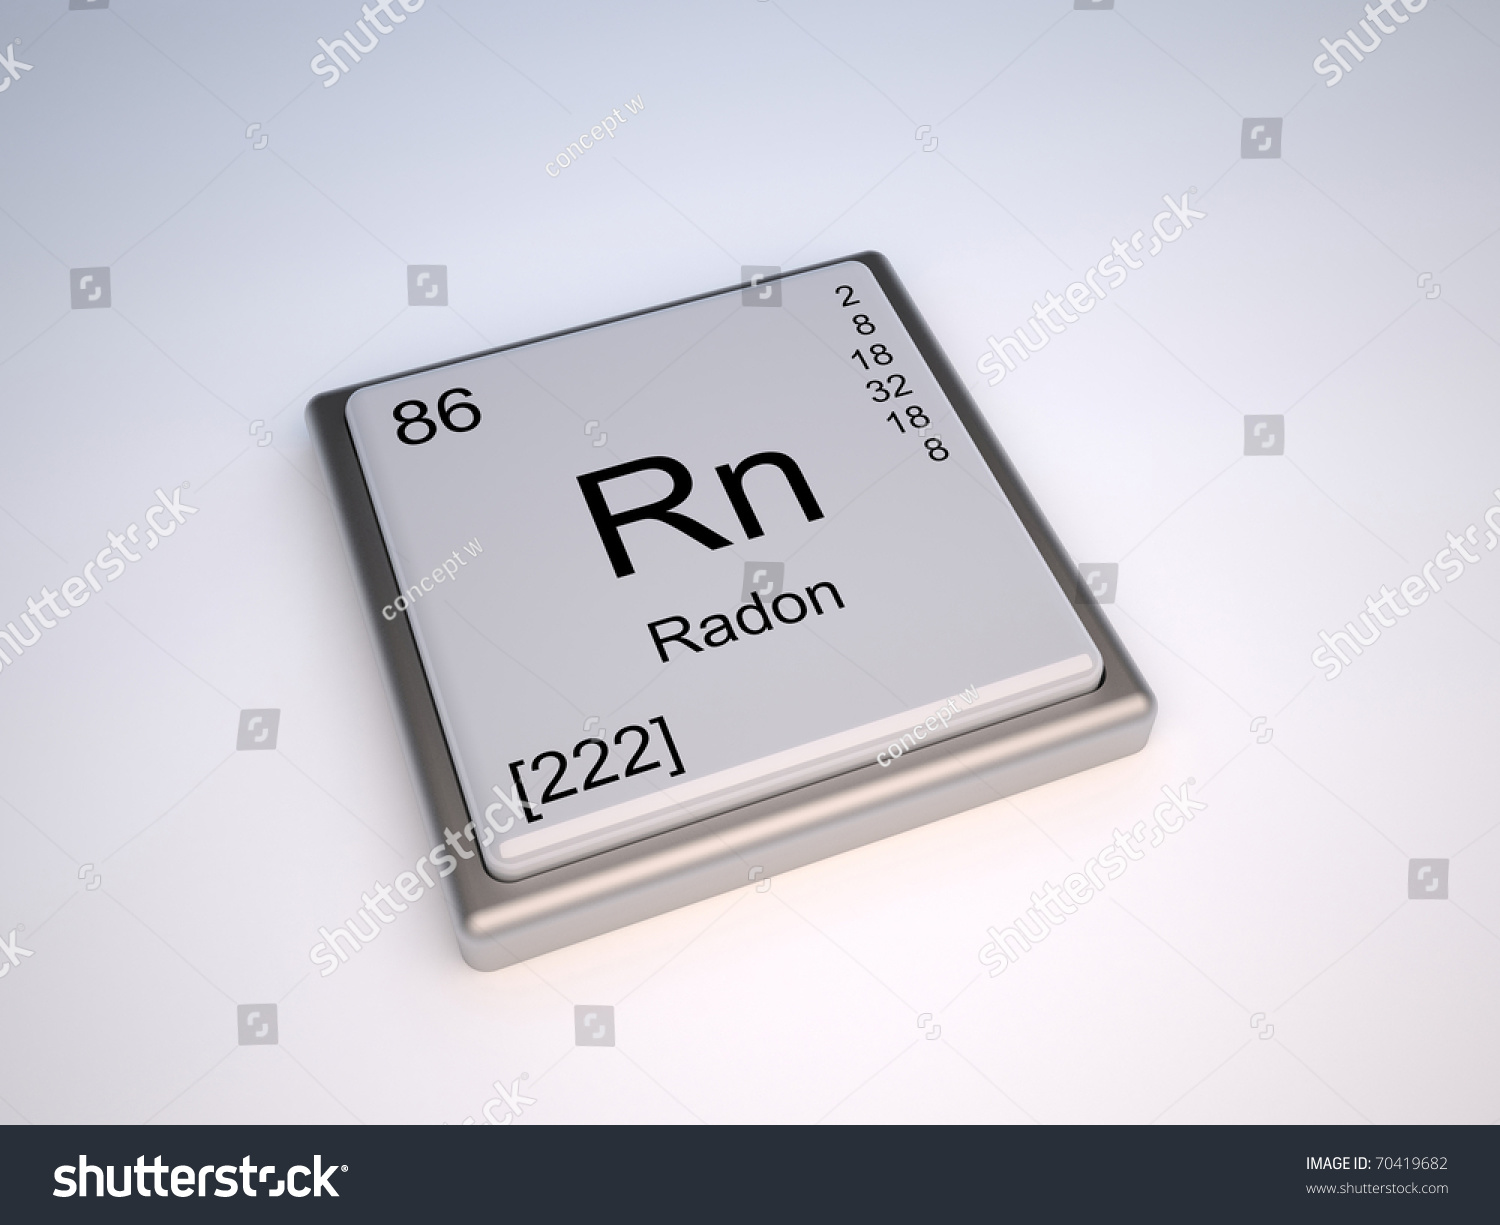 Radon Chemical Element Periodic Table Symbol Stock Illustration